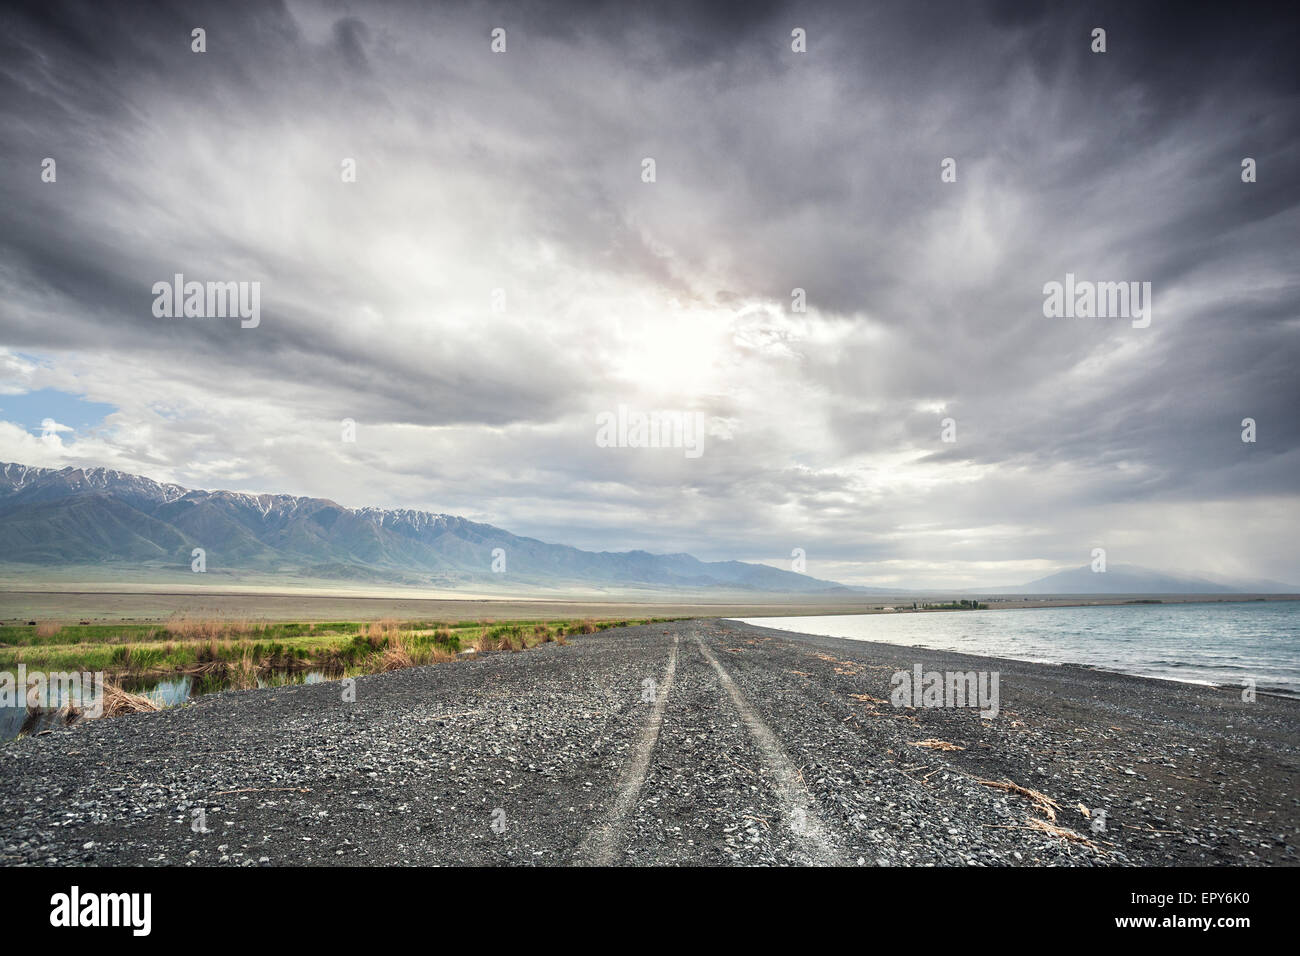 Road near Alakol Lake and mountain scenery at dramatic overcast sky in Kazakhstan, central Asia - Stock Image